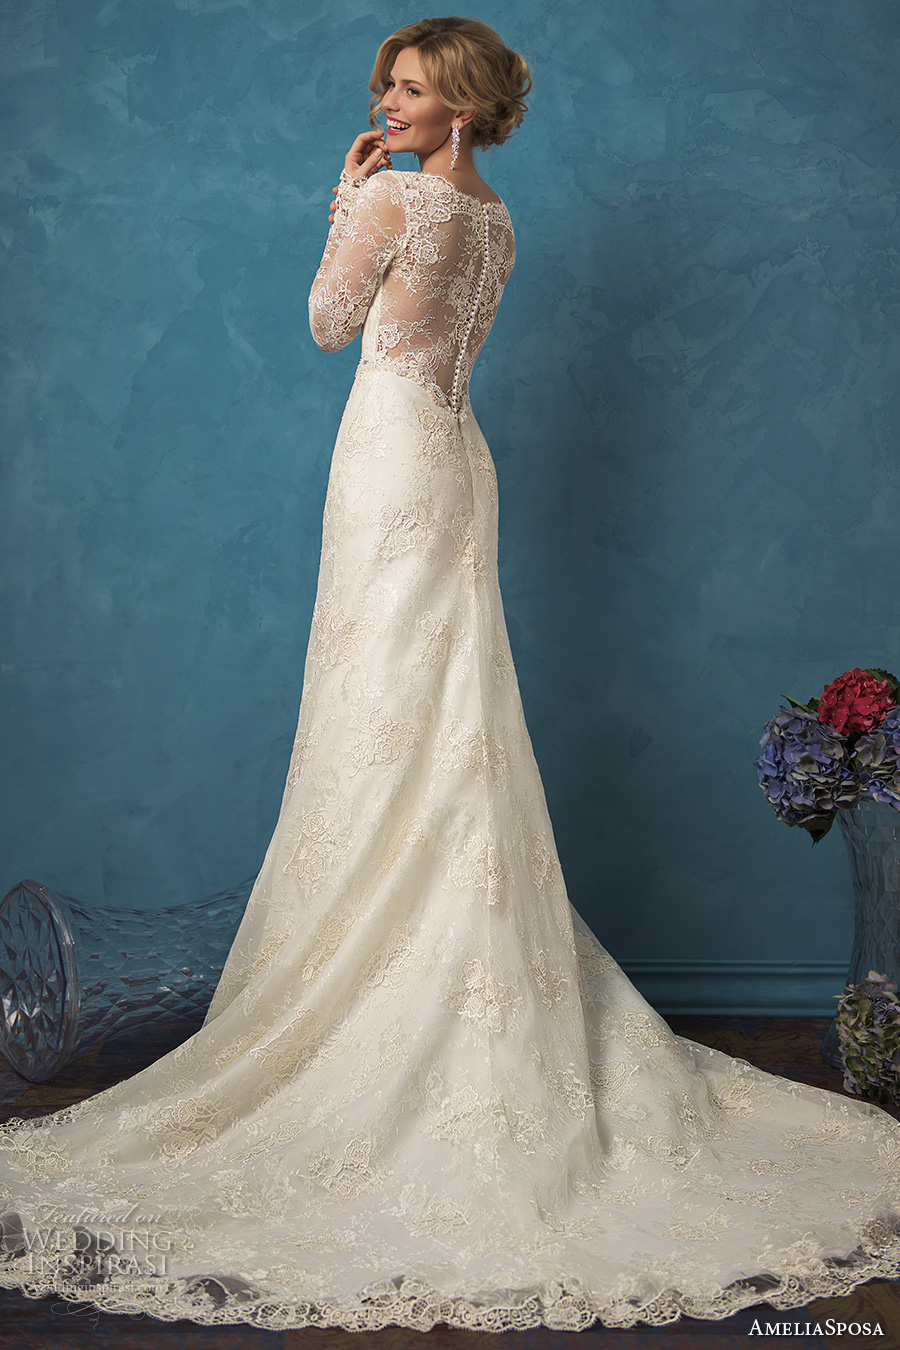 Amelia Sposa 2017 Wedding Dresses - BridalPulse